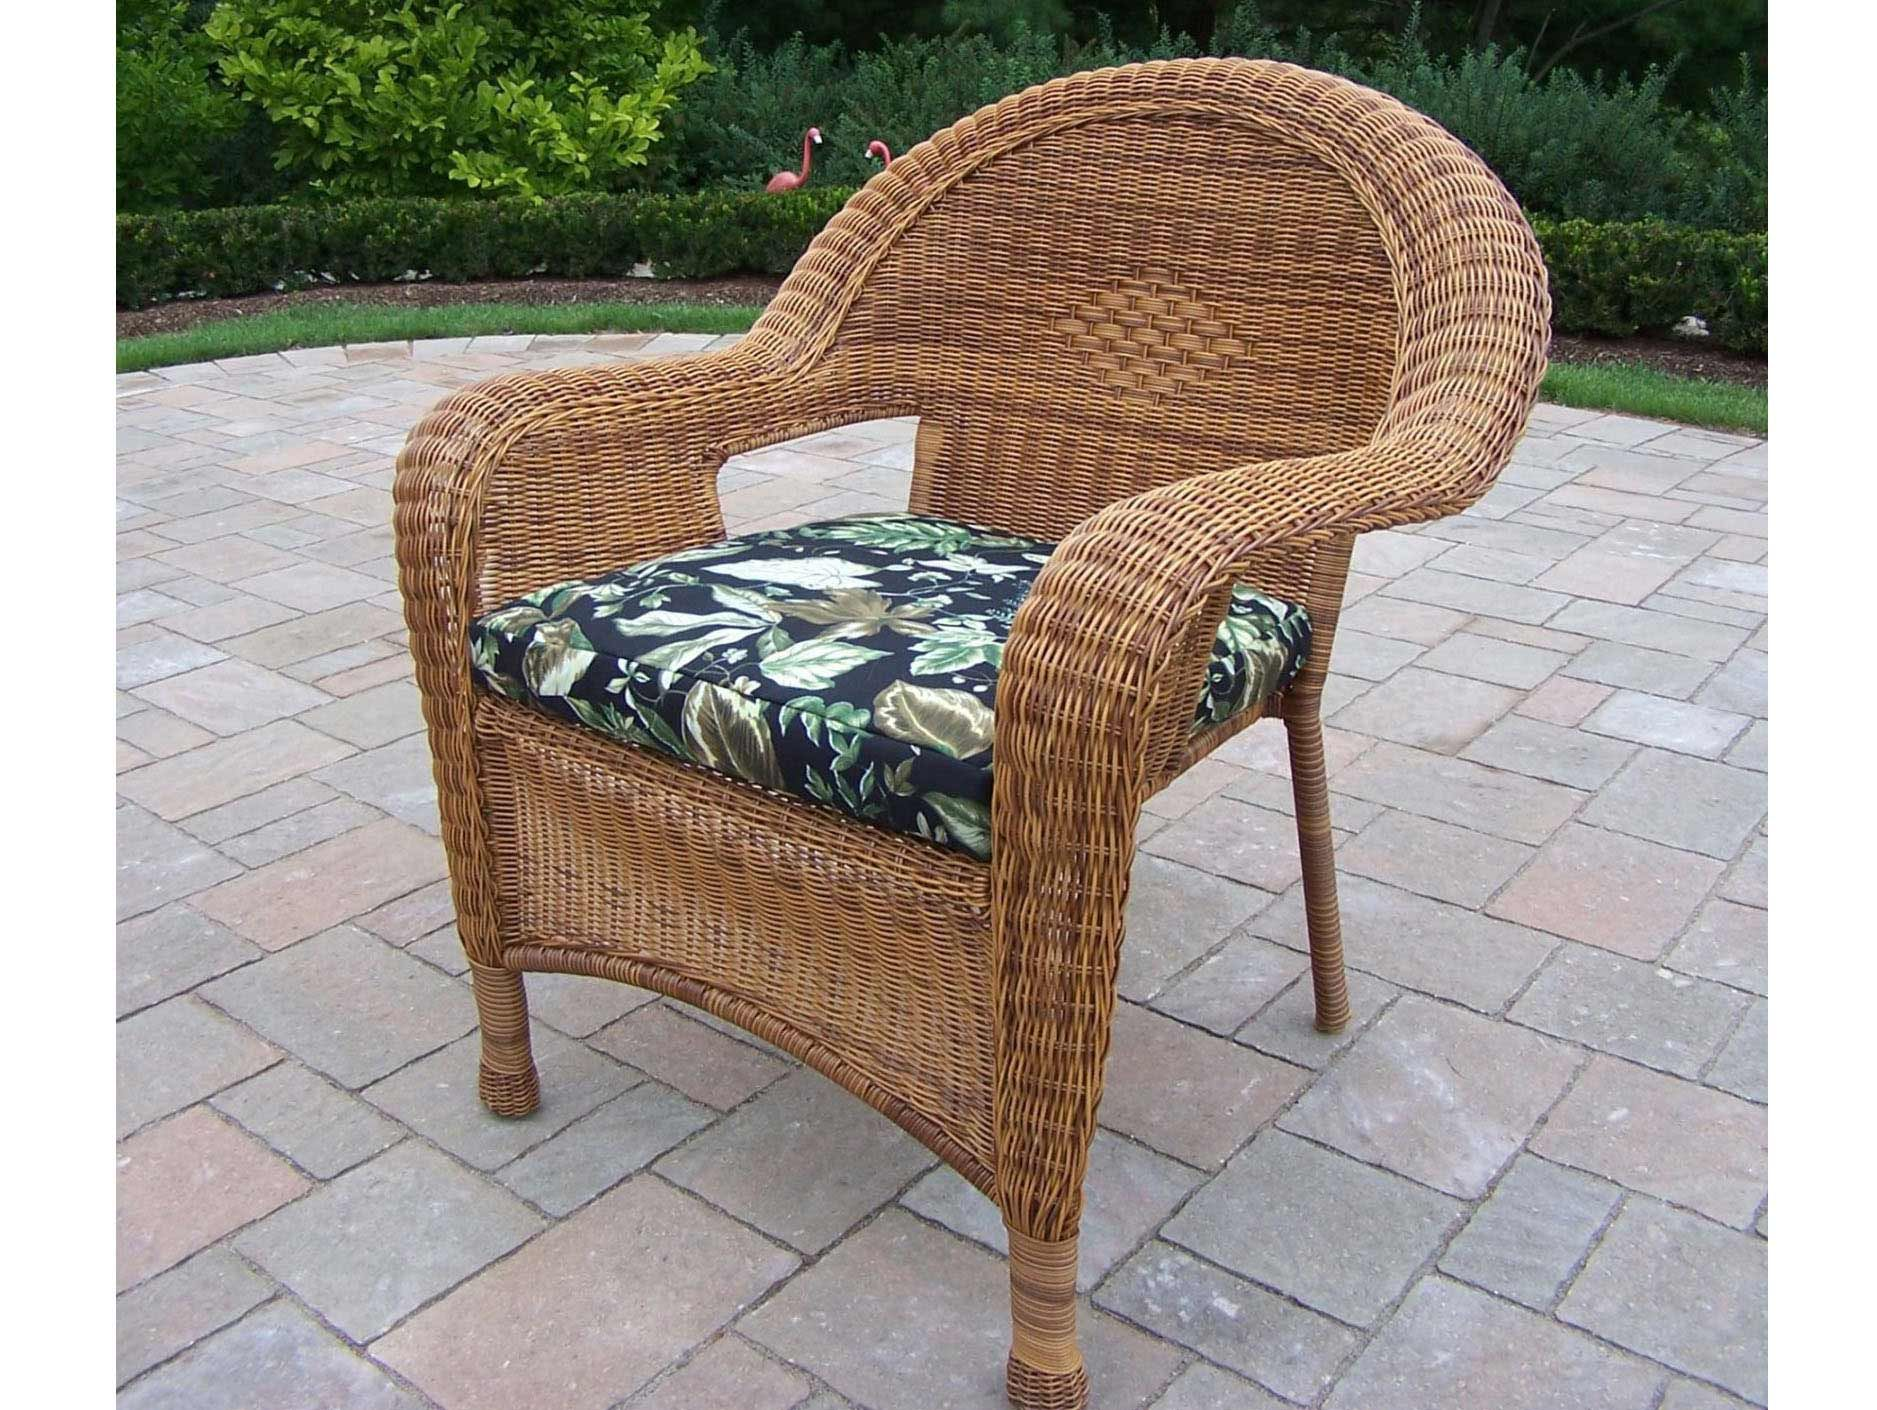 Download Full Size Image Wicker Furniture Cushions 1877—1410